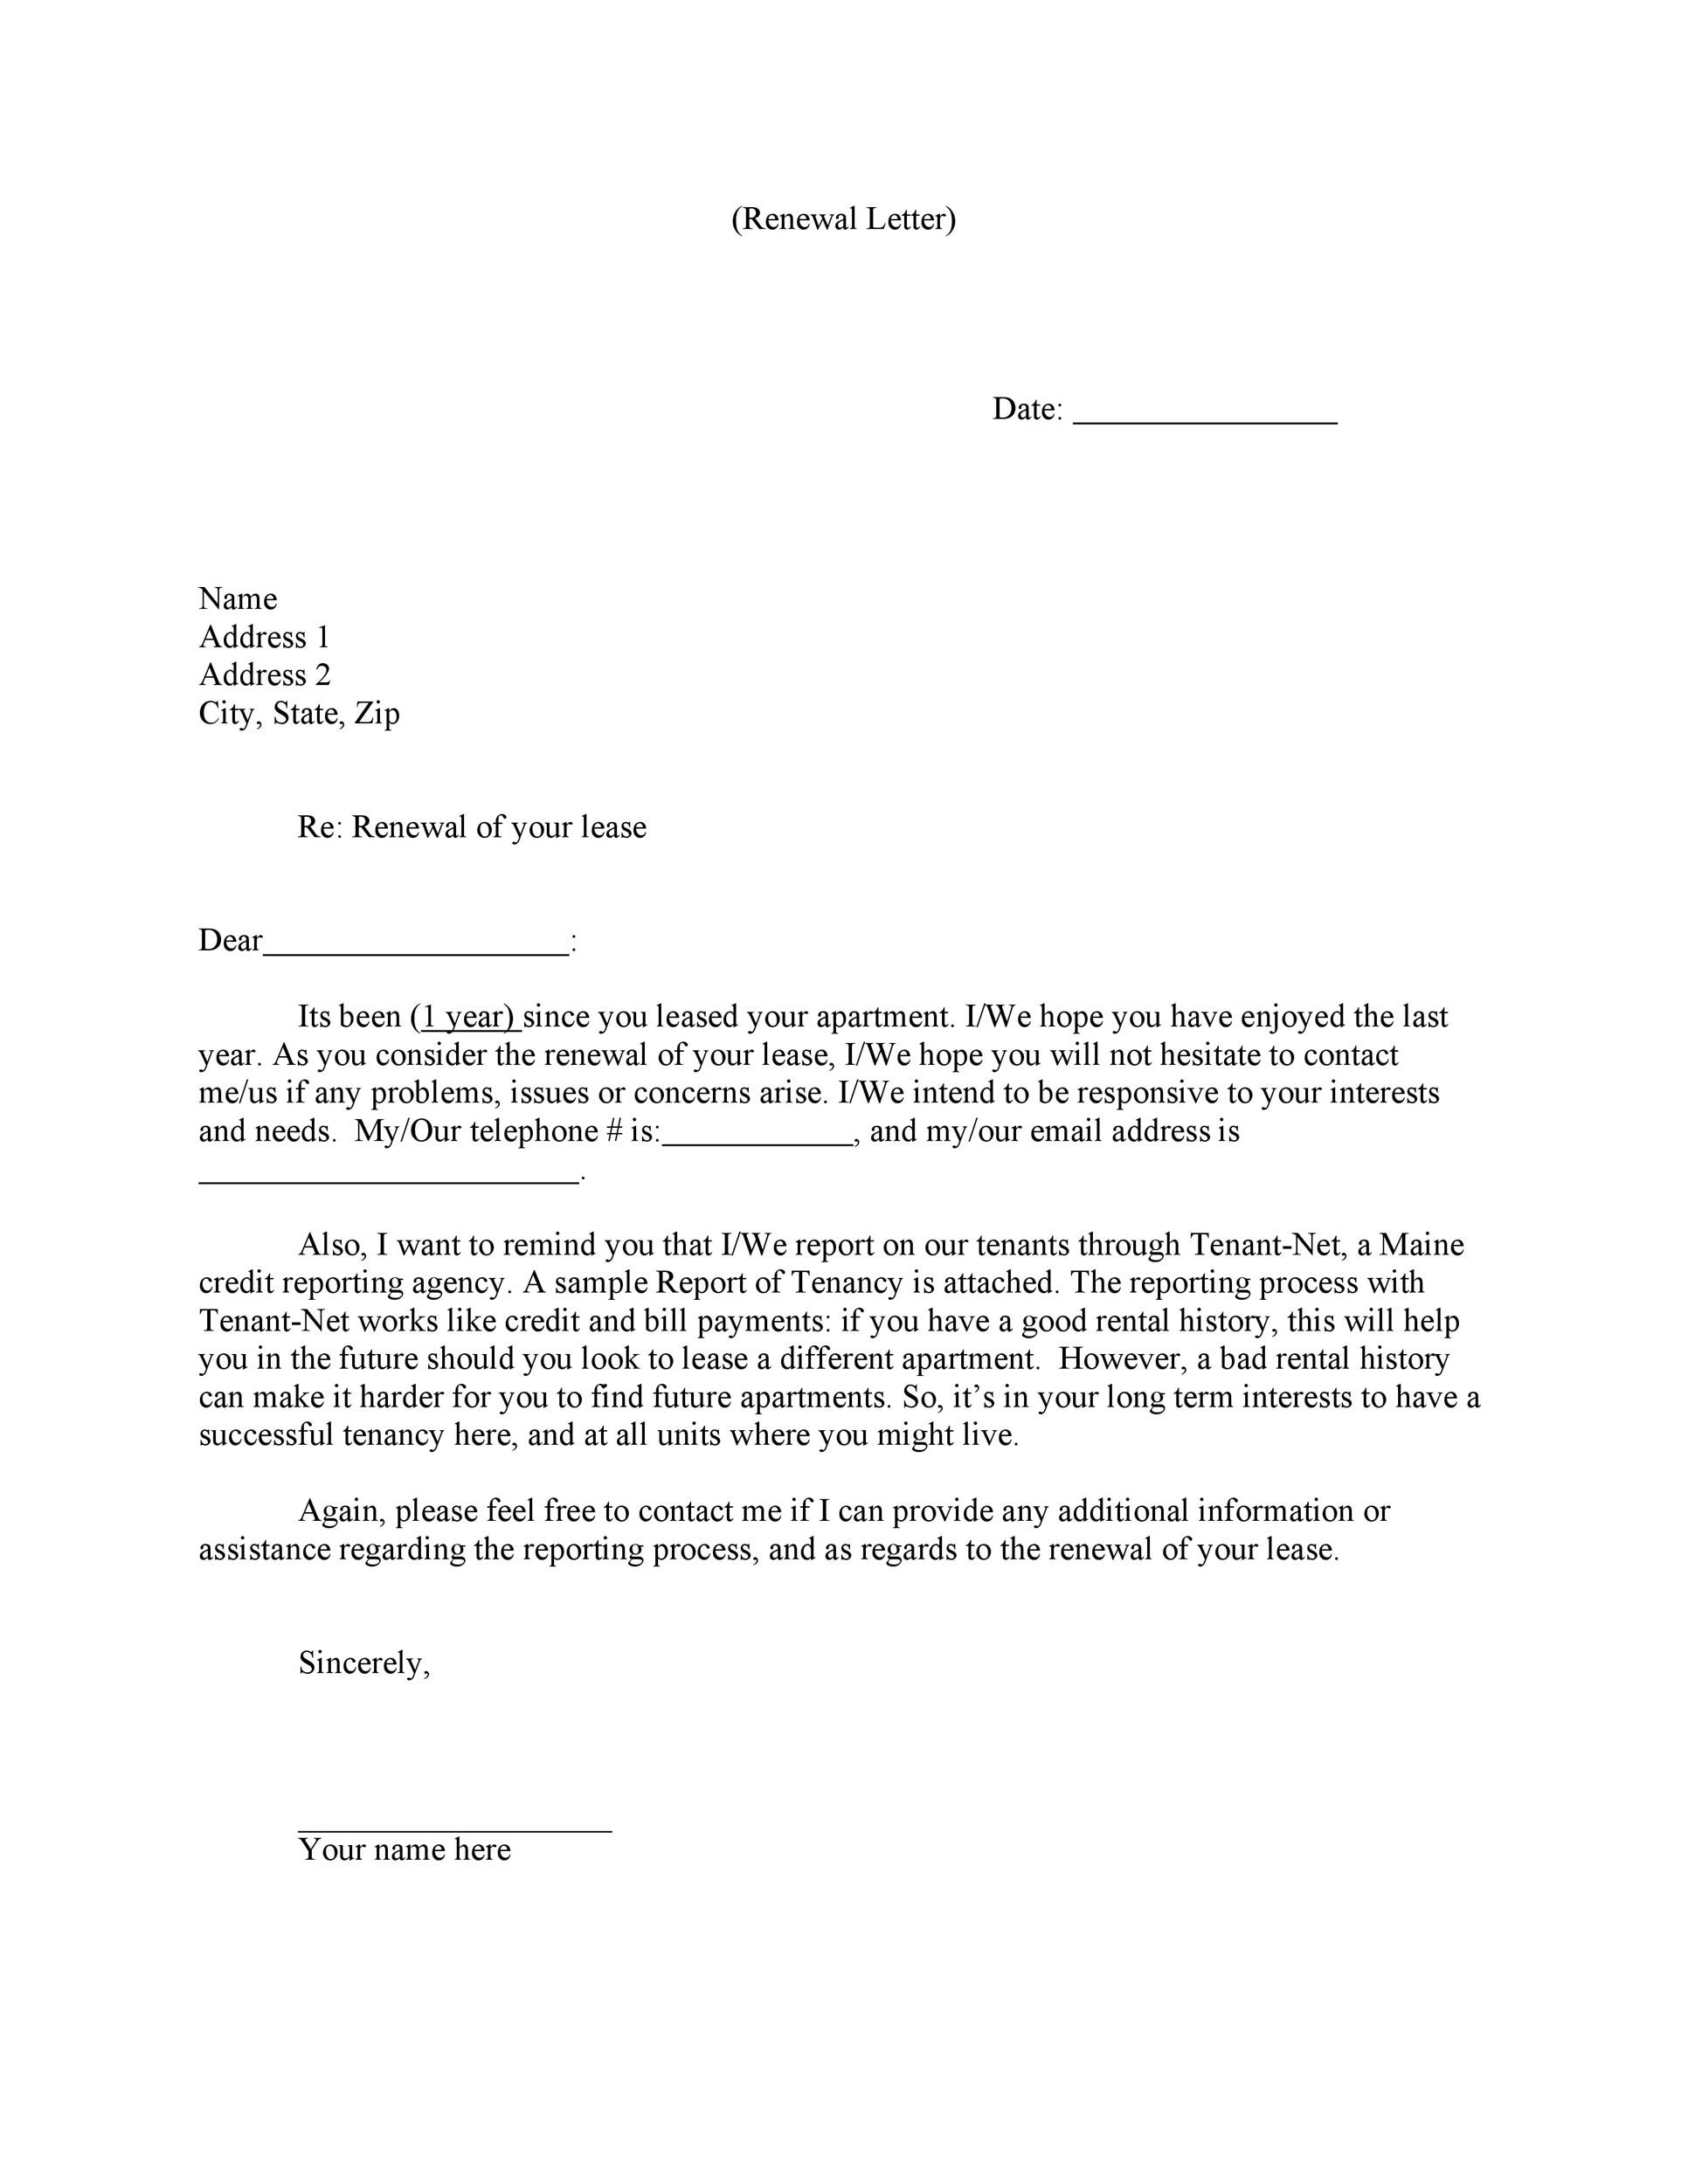 sample letter of renewal of contract of lease